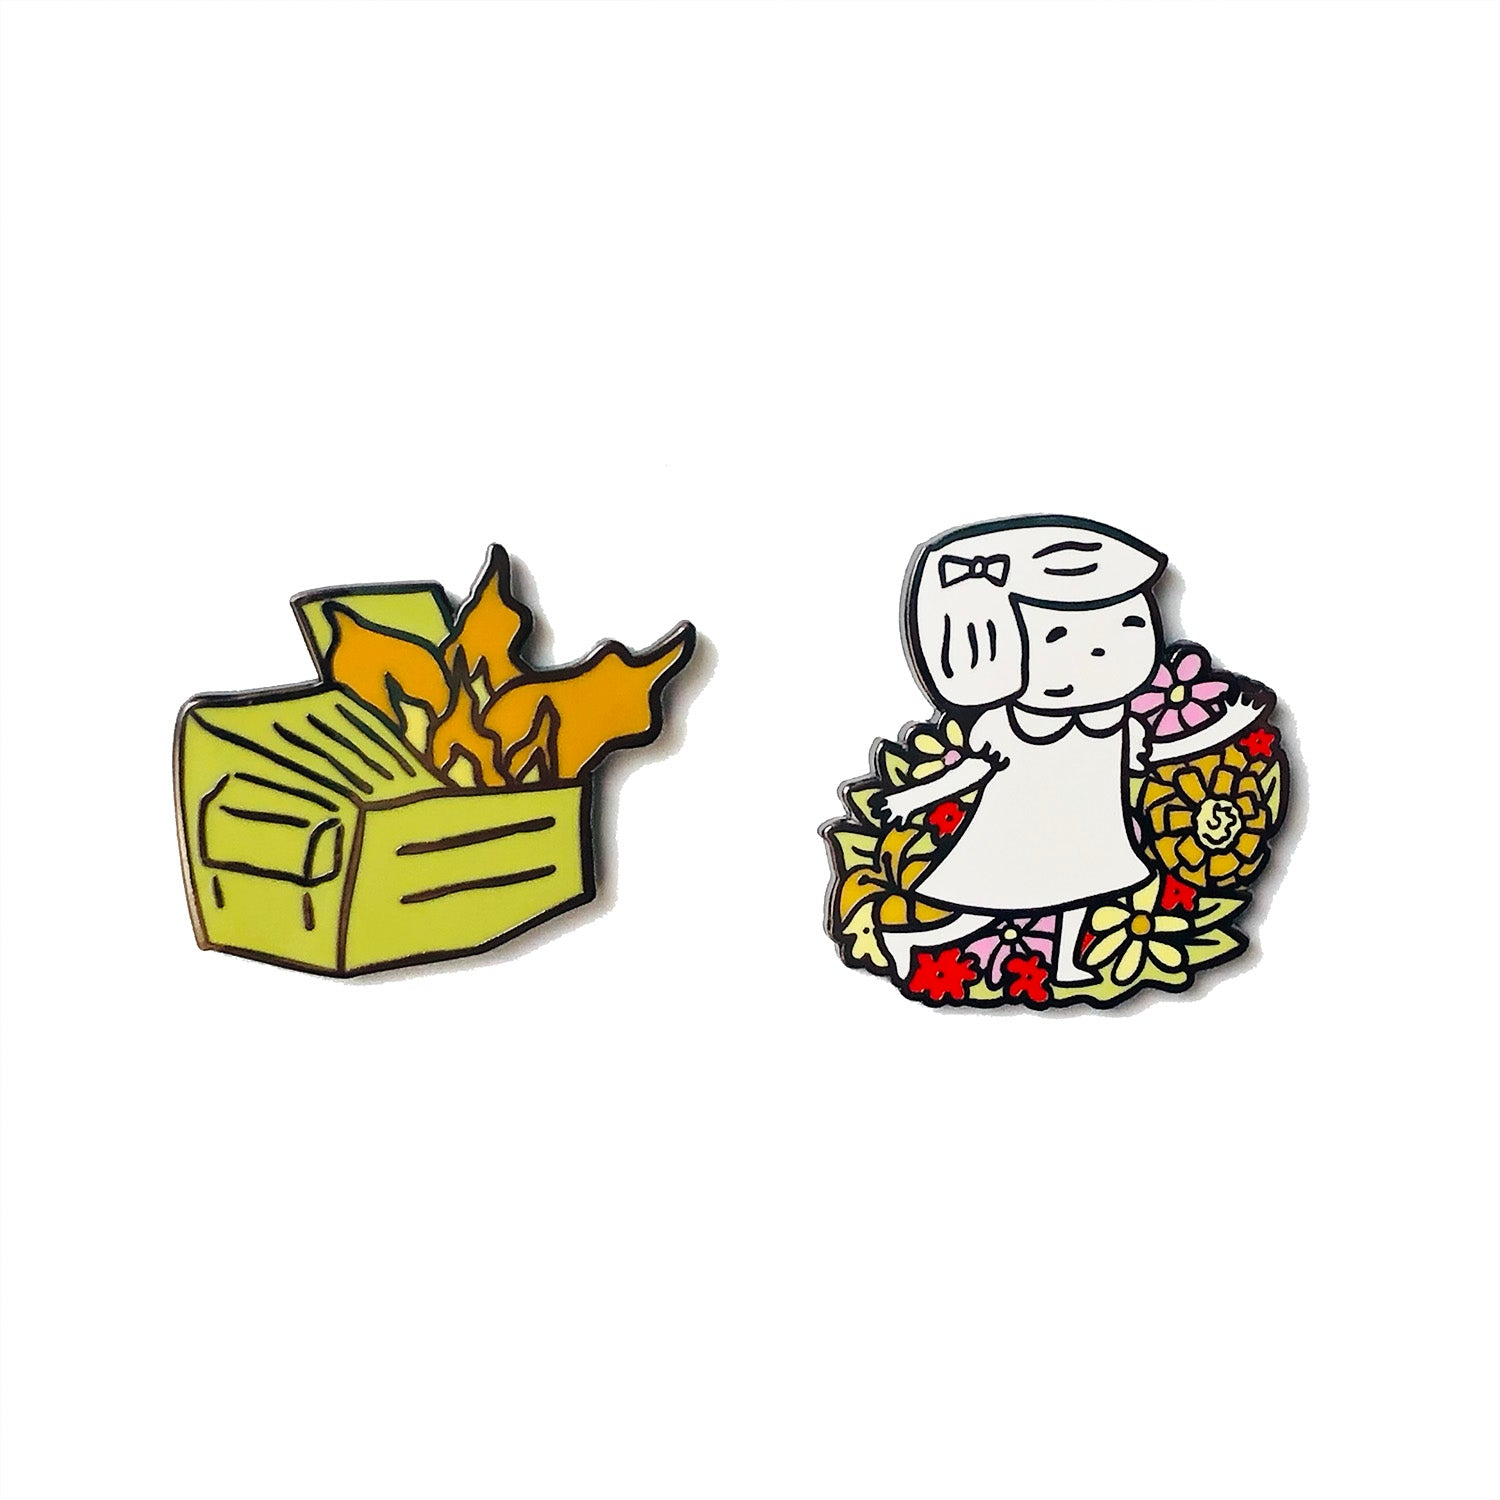 The Dumpster Fire and the Garden Enamel Pin Set